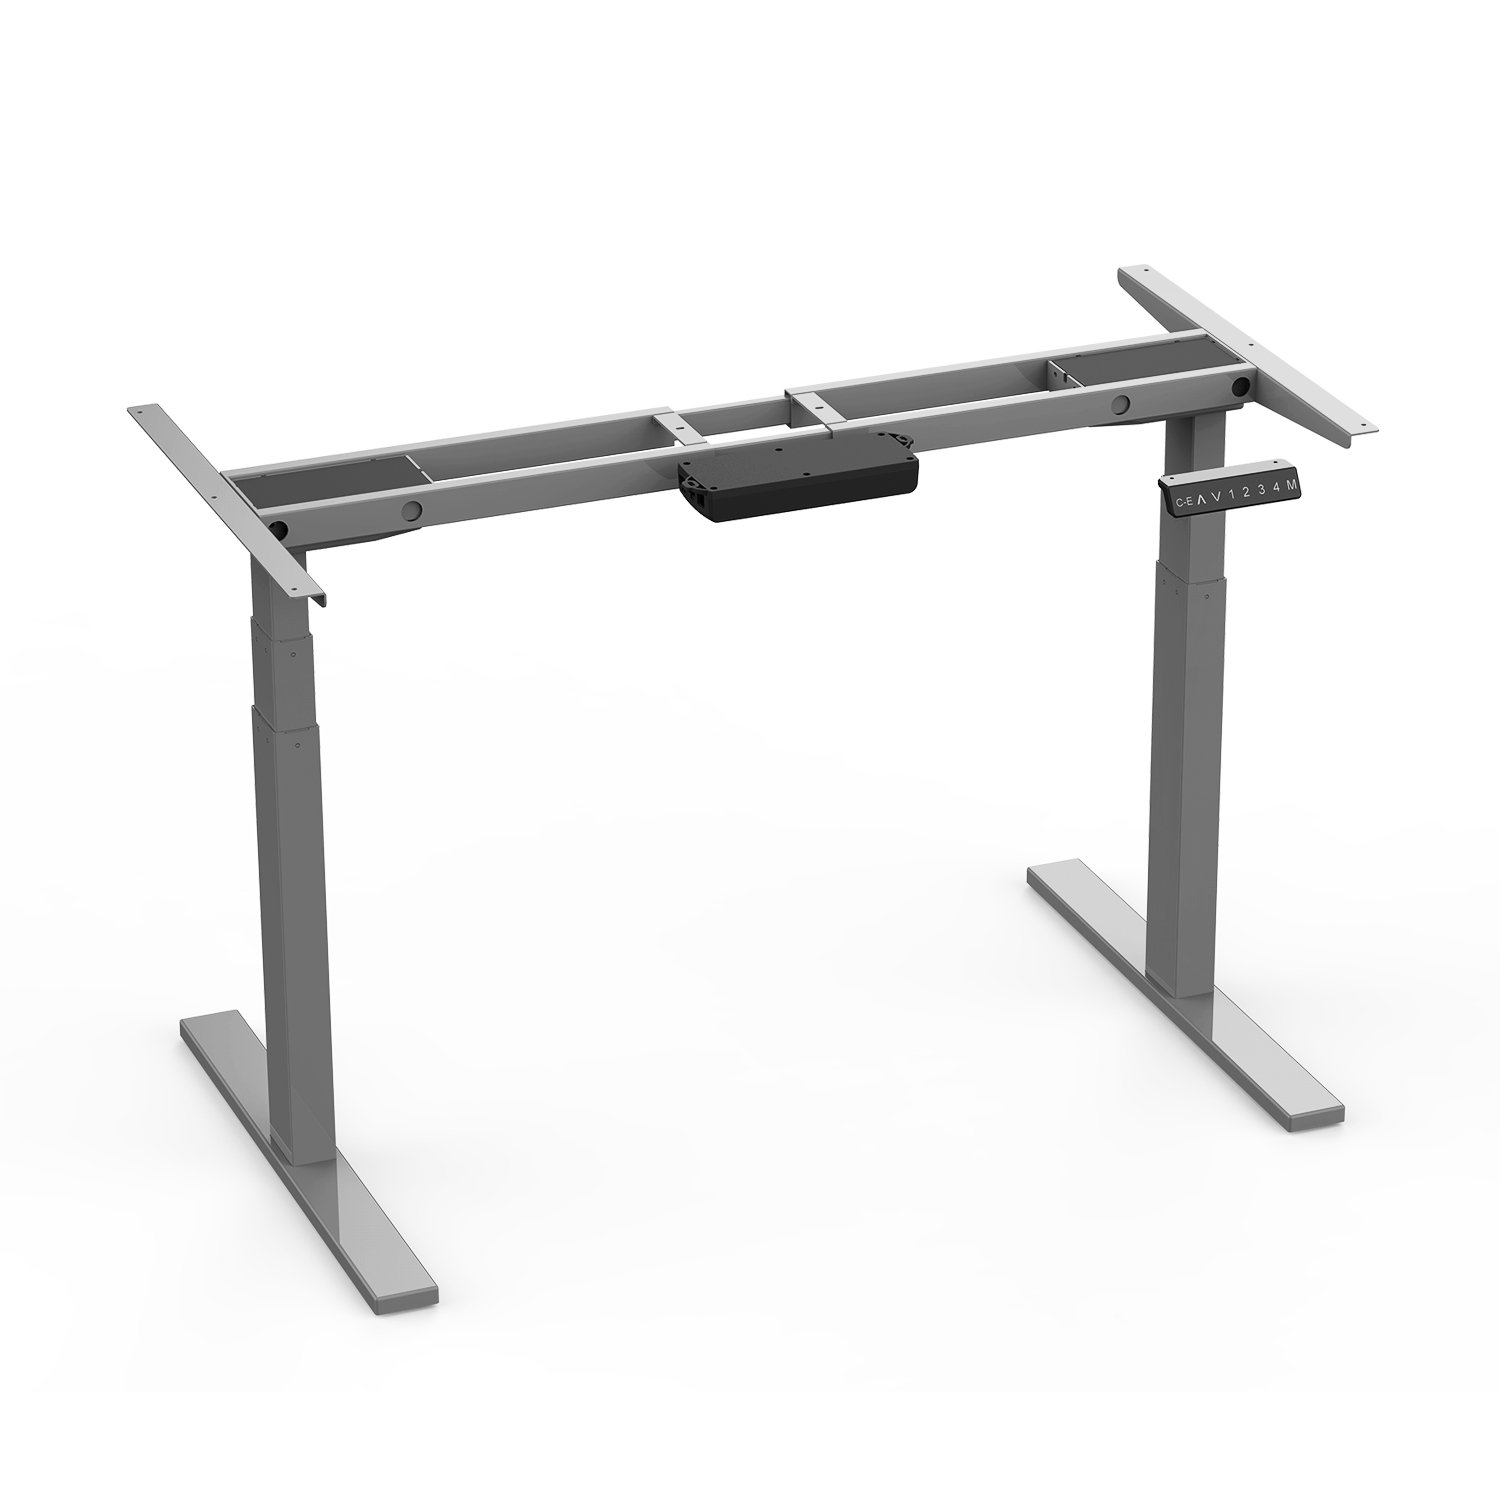 AIMEZO Smart Desk 3 Tiers Legs Electric Adjustable Desk Base Standing Workstation Sit to Stand Up Desk Frame w/Dual Motor and One-Touch Memory Control by AIMEZO